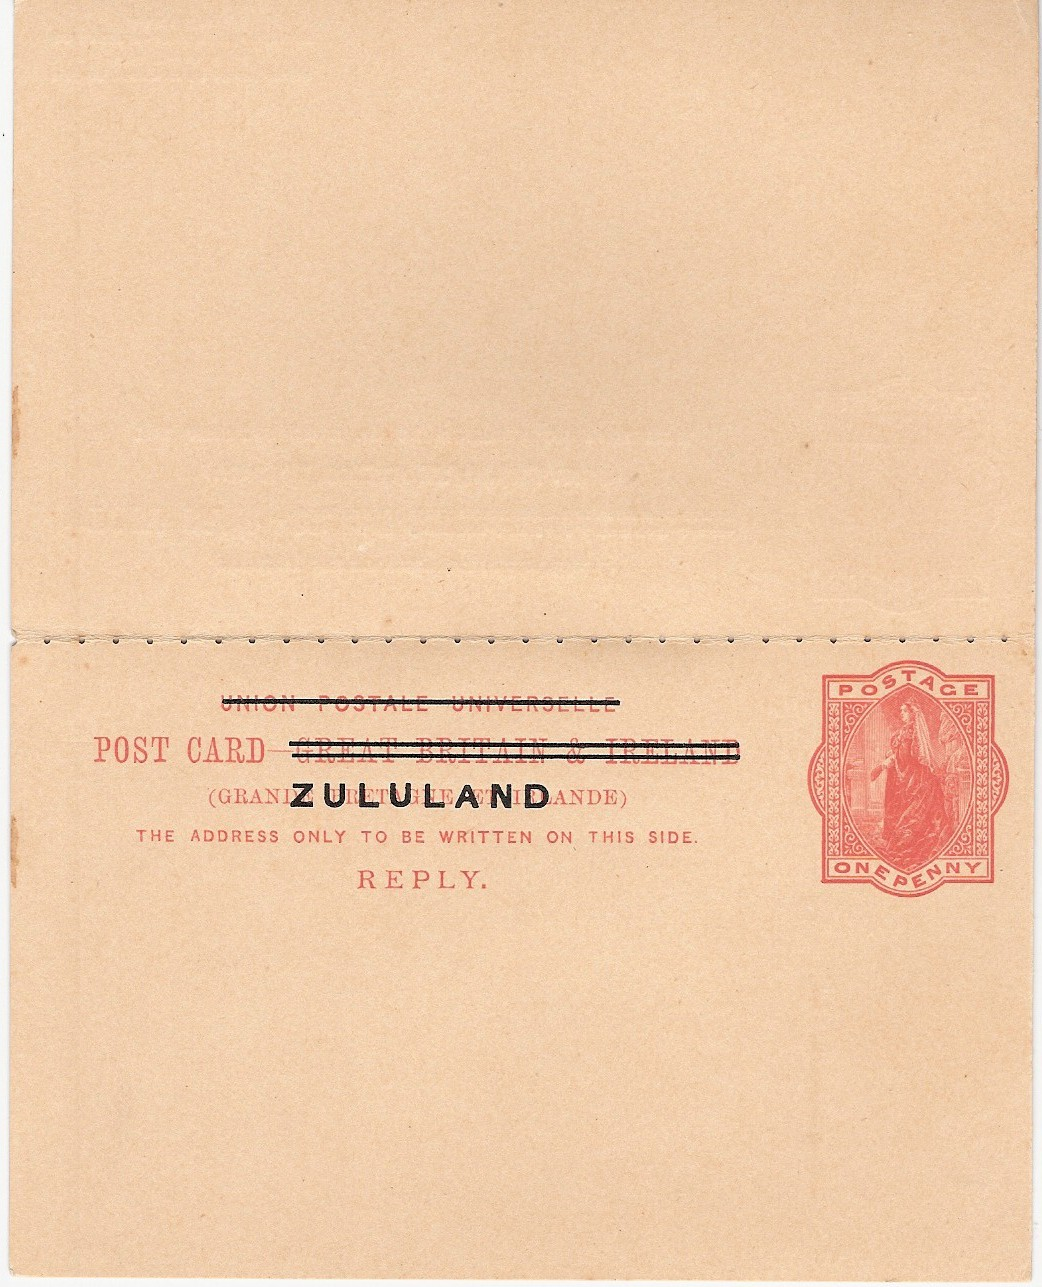 Zululand card 1d+1d reply